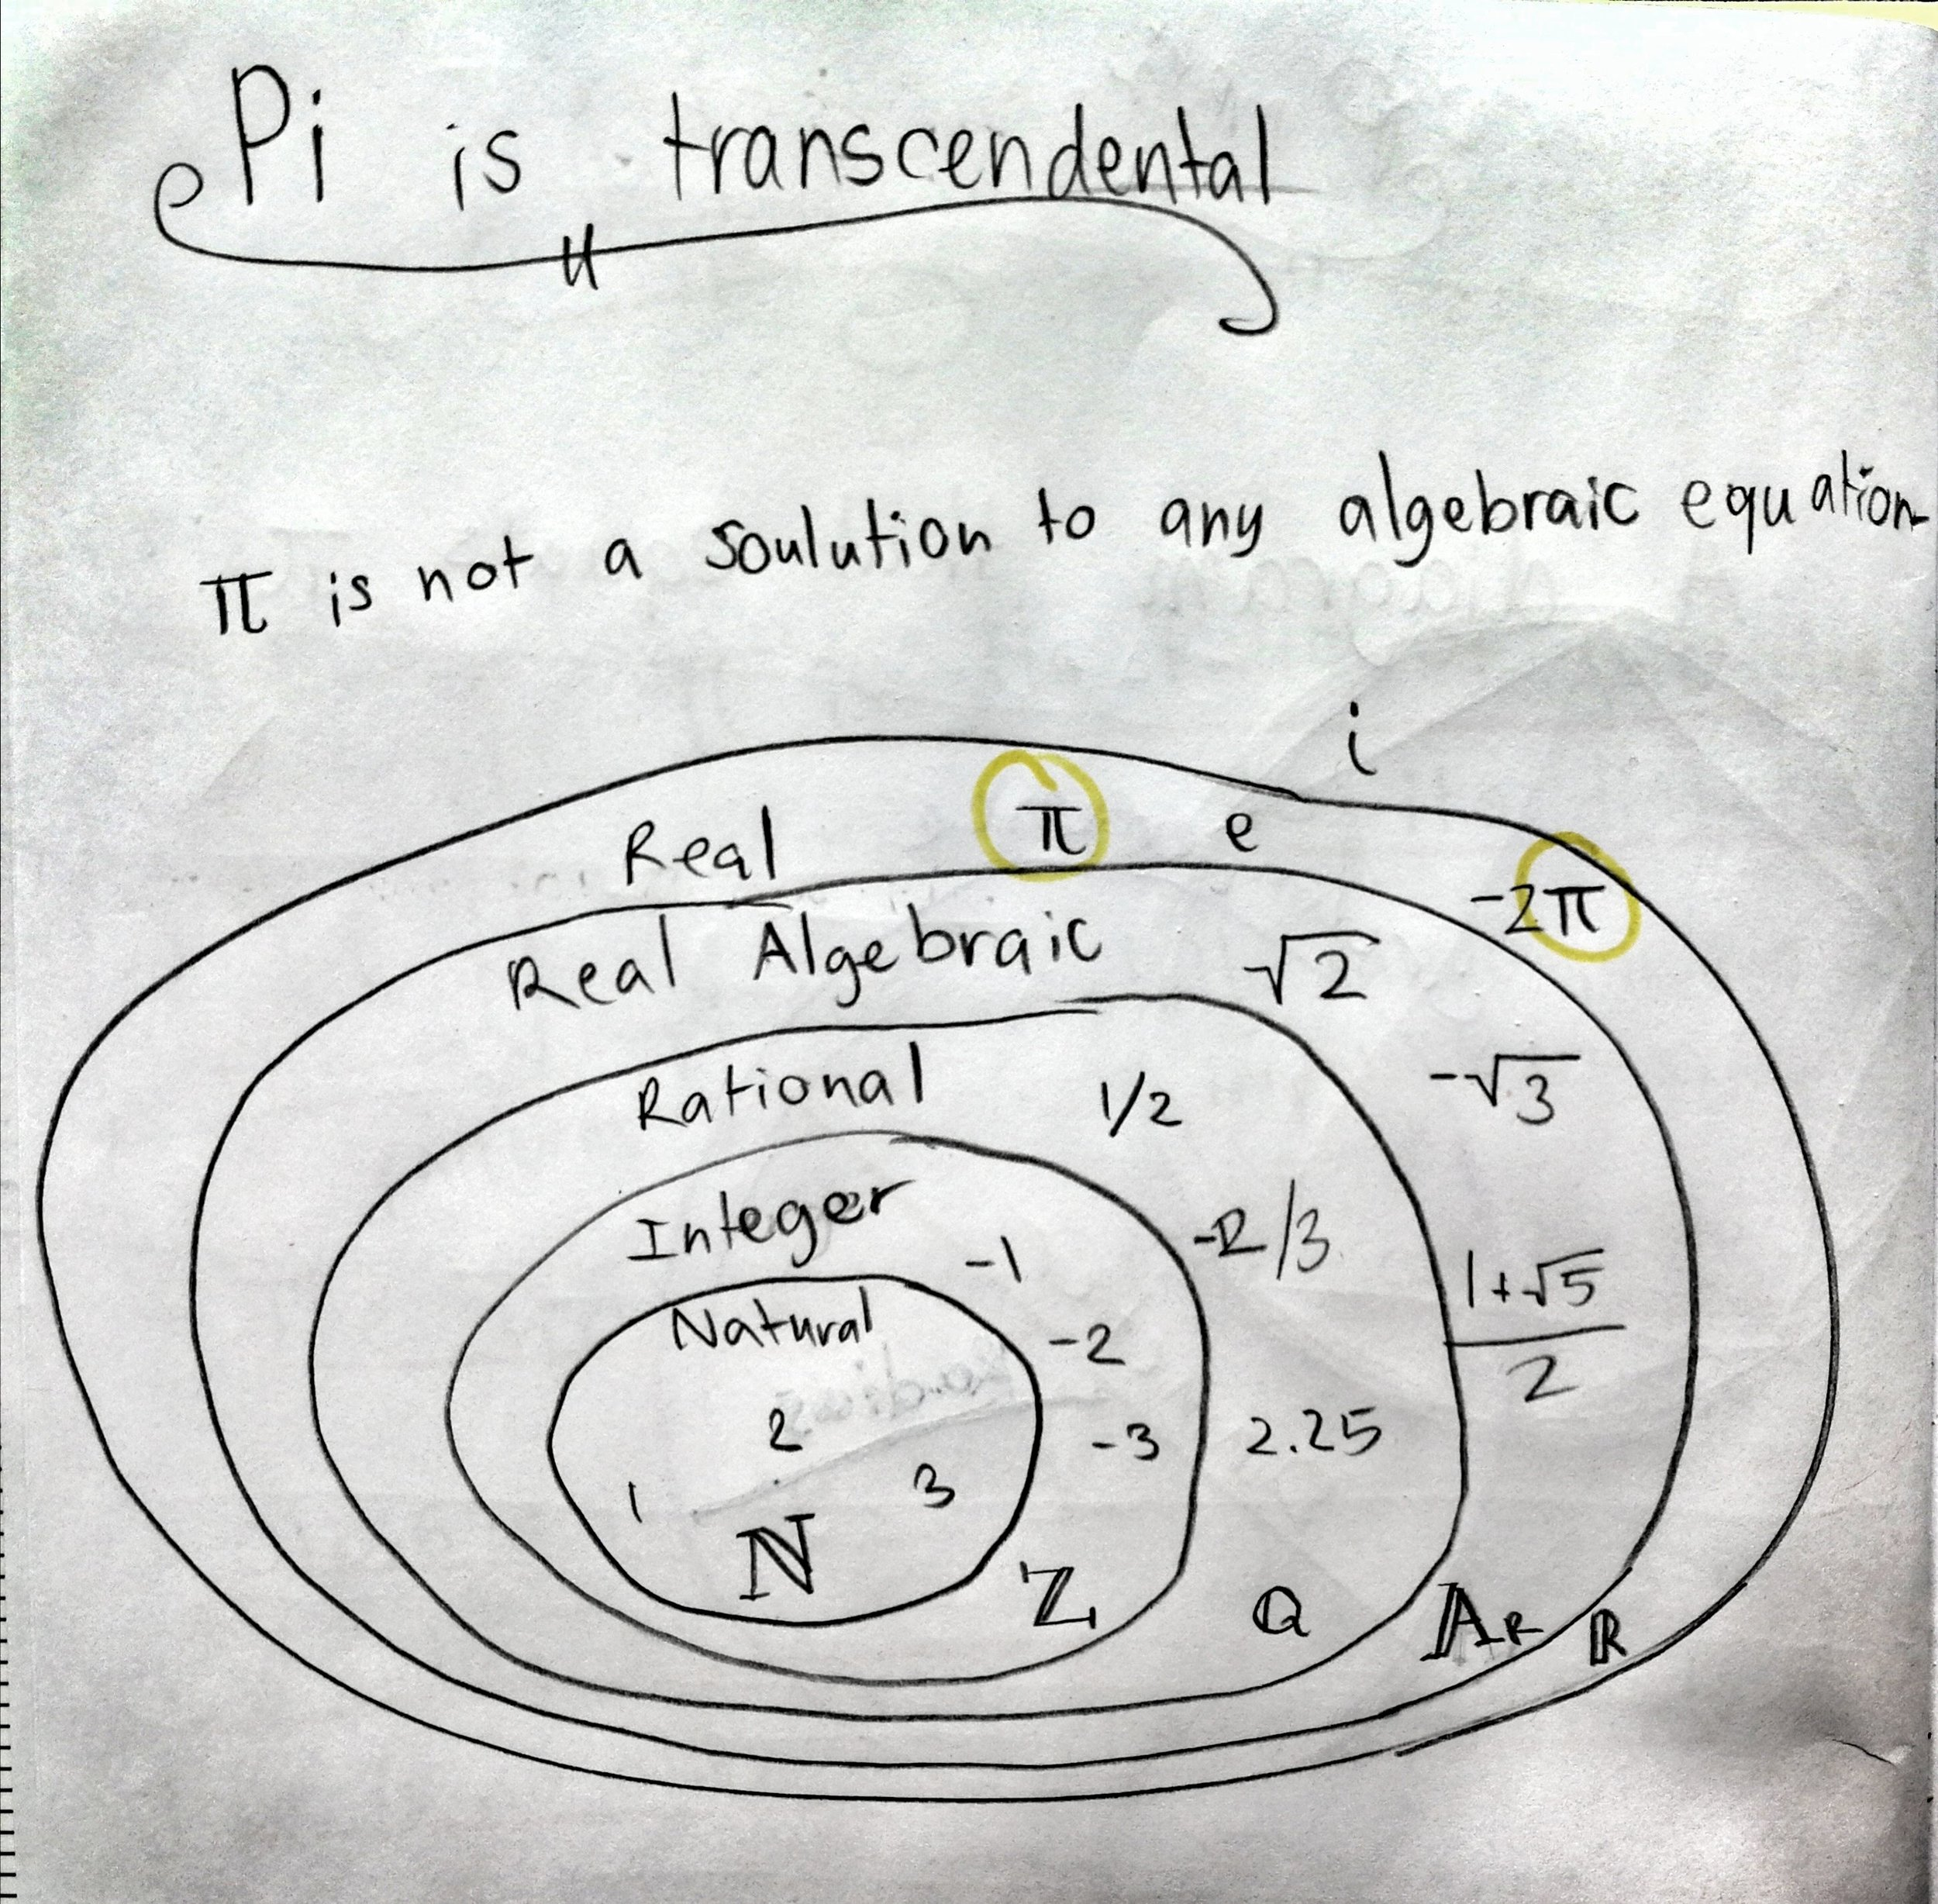 Evie's book shows the relationships between the sets of natural numbers (N), integers (Z), rationals (Q), algebraic numbers (A), and real numbers (R). Transcendental numbers are real, but not algebraic. (Some definitions also let them be complex.)